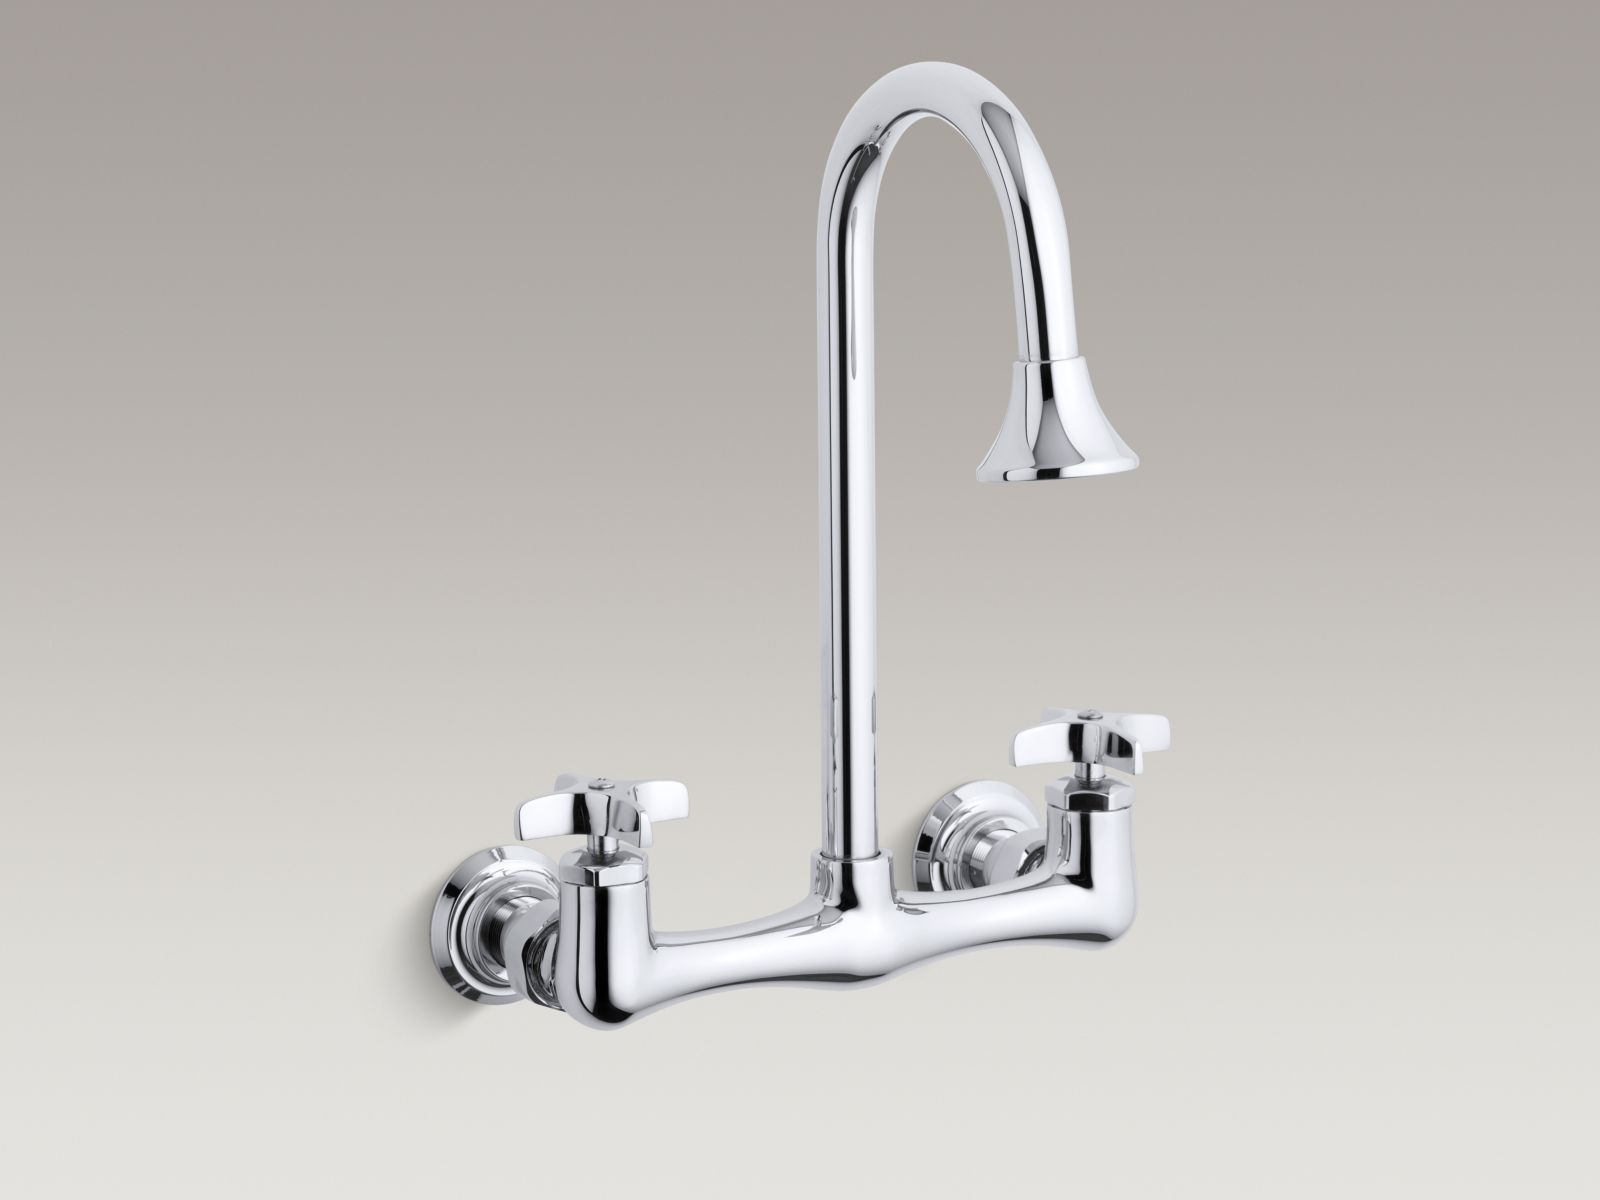 BuyPlumbing.net - Product: Two Handle Wall Mount Faucet in a ...